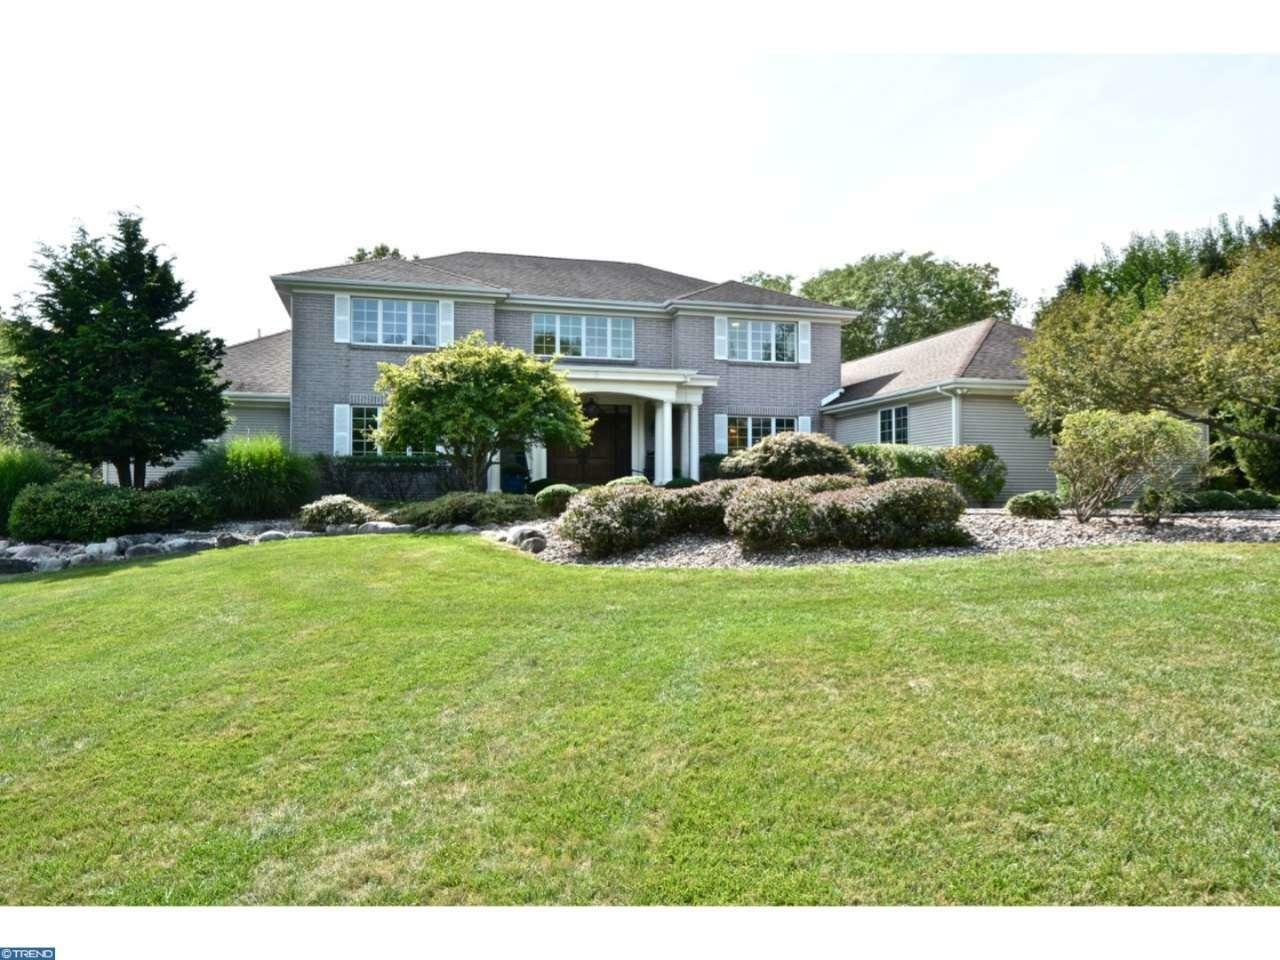 6 Harbourton Ridge Dr, Pennington, NJ - USA (photo 1)